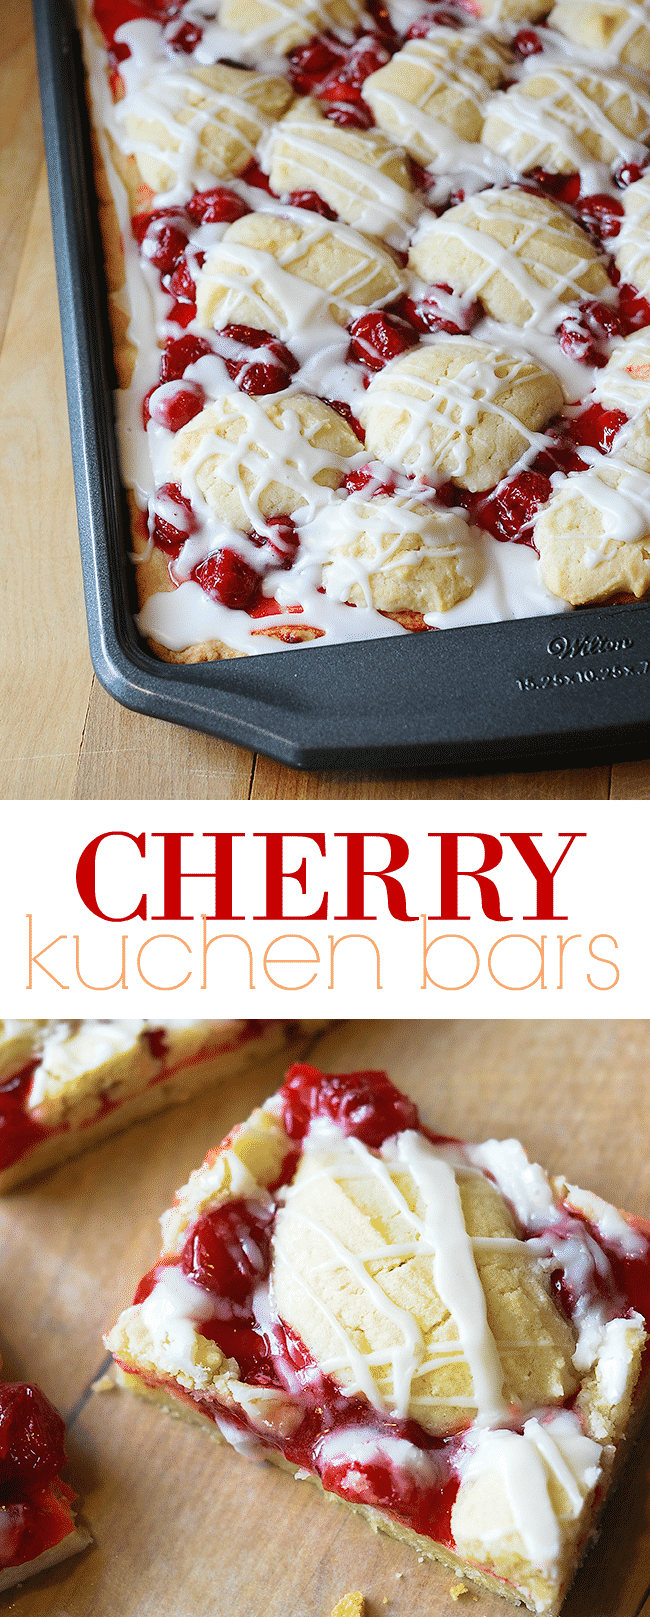 Cherry Pie Bars Recipe | Cherry Kuchen Bars | Easy Dessert Bars | Cherry Pie Filling Dessert | Sheet Pan Dessert